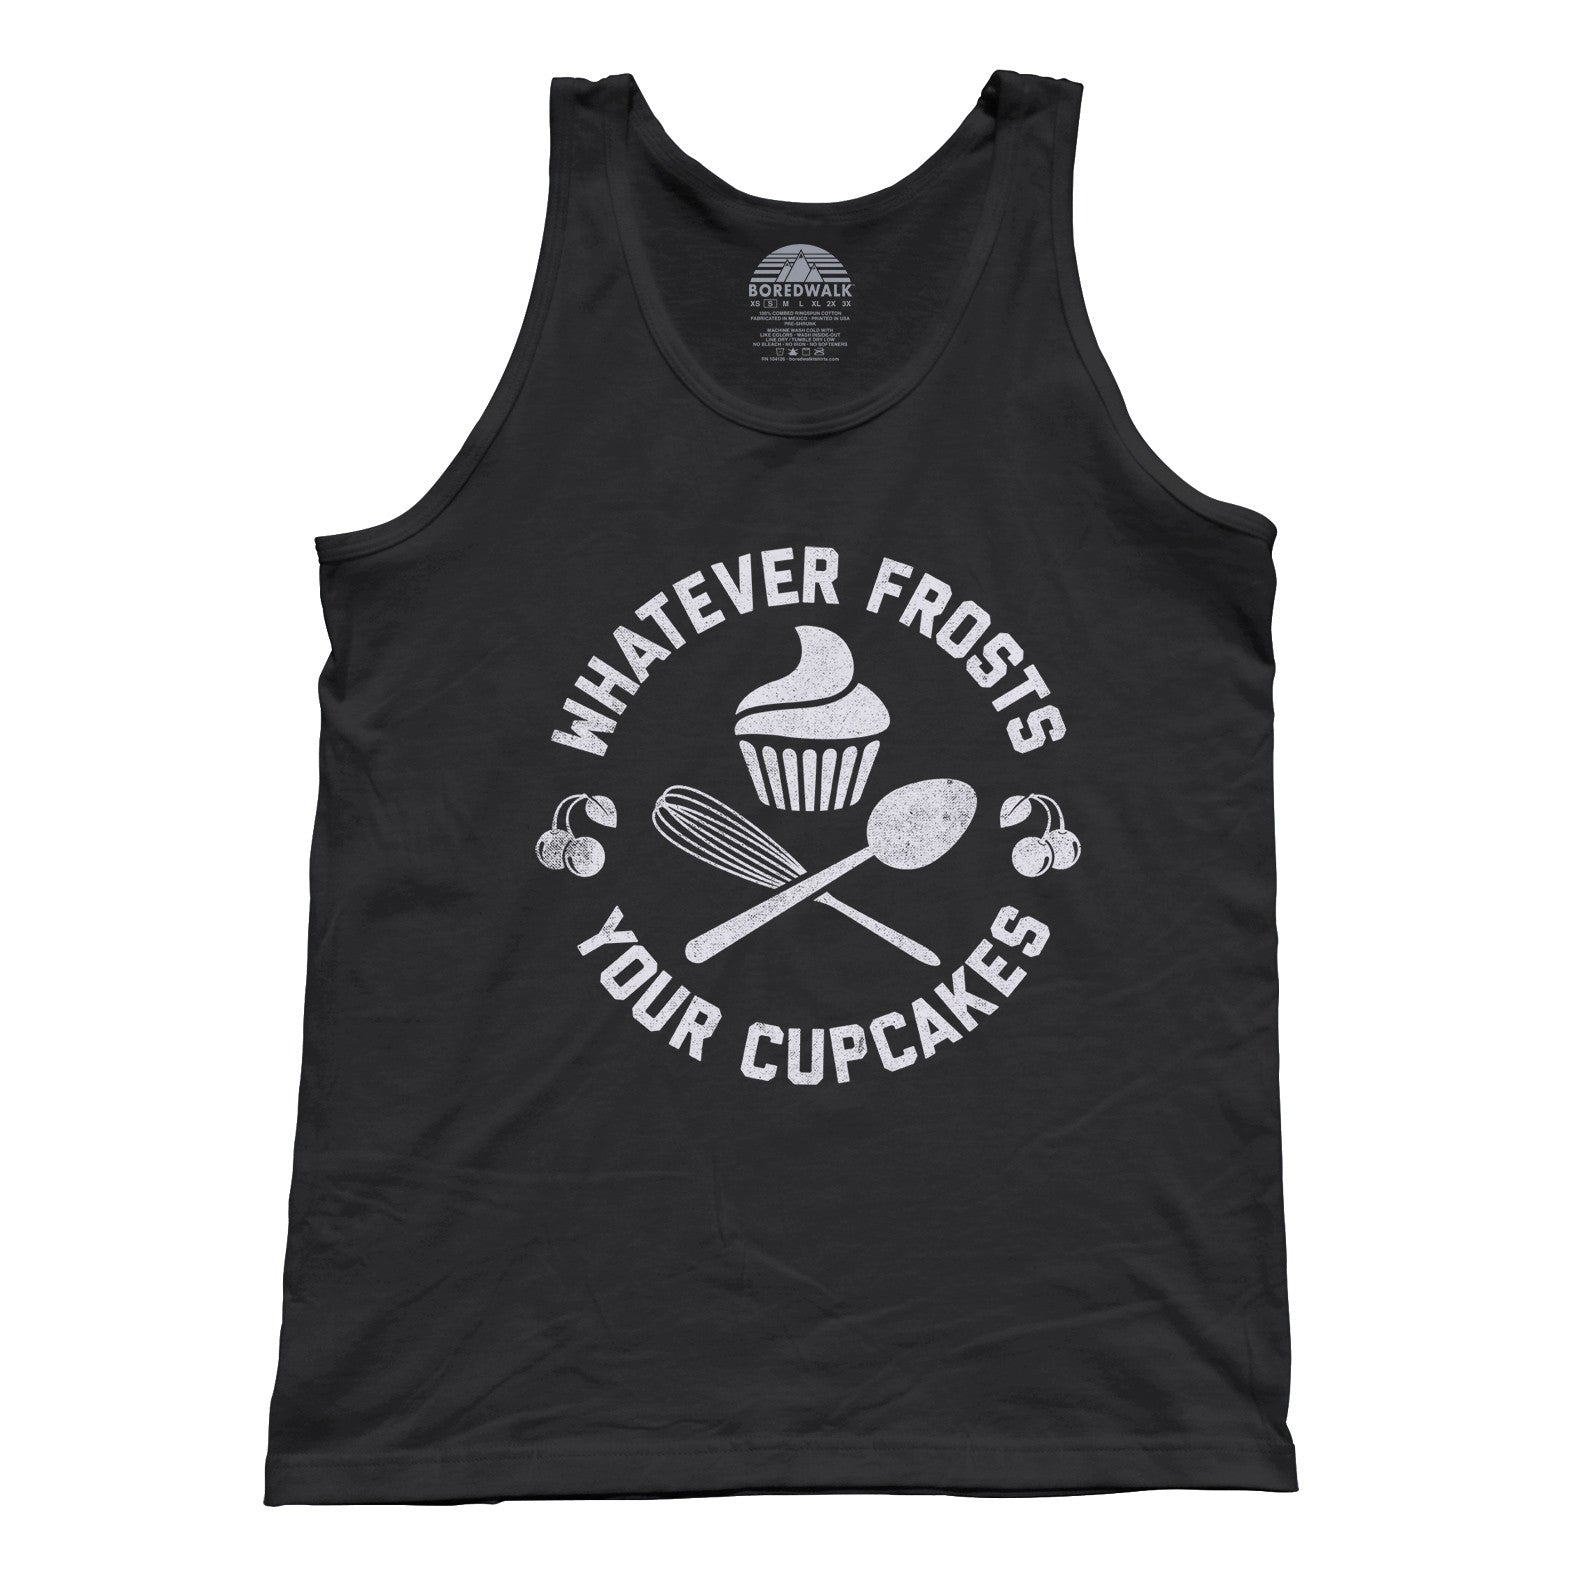 Unisex Whatever Frosts Your Cupcakes Tank Top